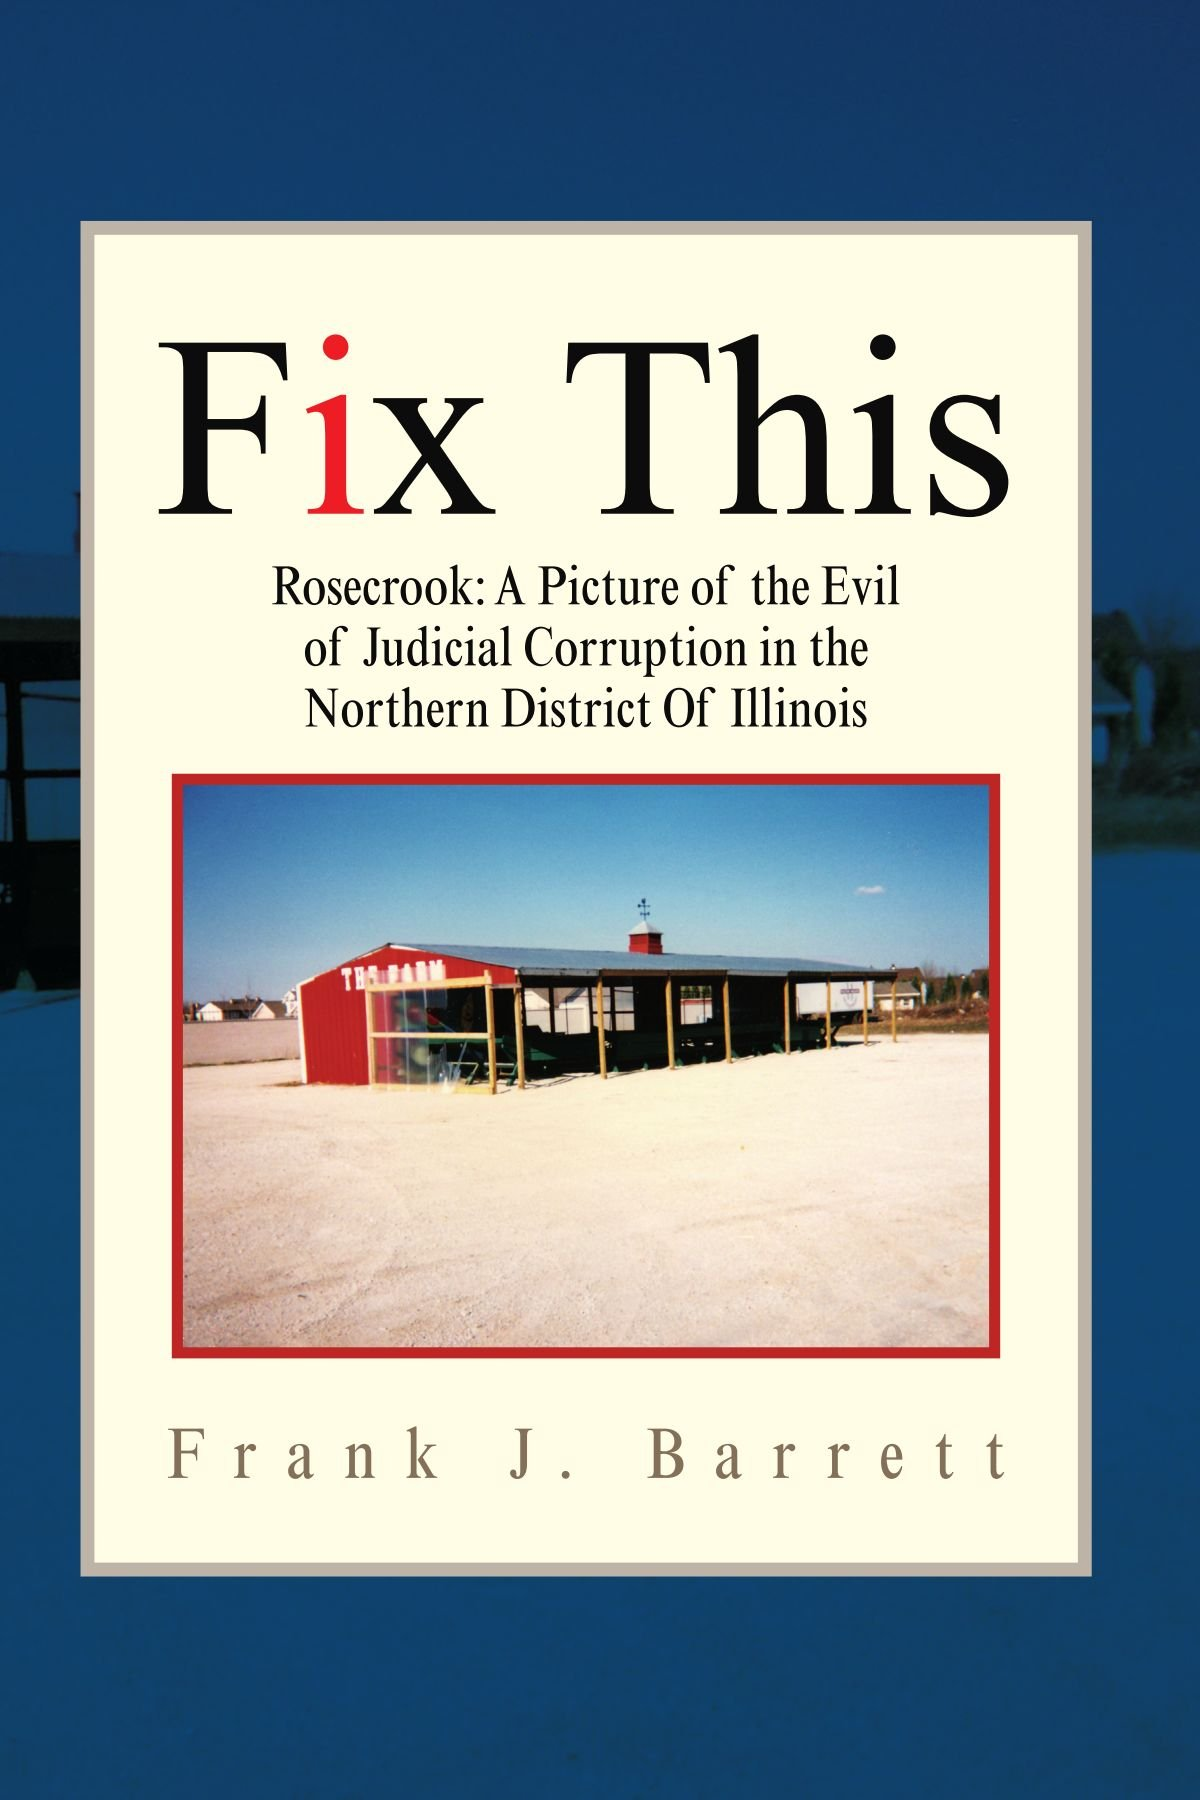 Fix This: Rosecrook: A Picture of the Evil of Judicial Corruption in the Northern District Of Illinois